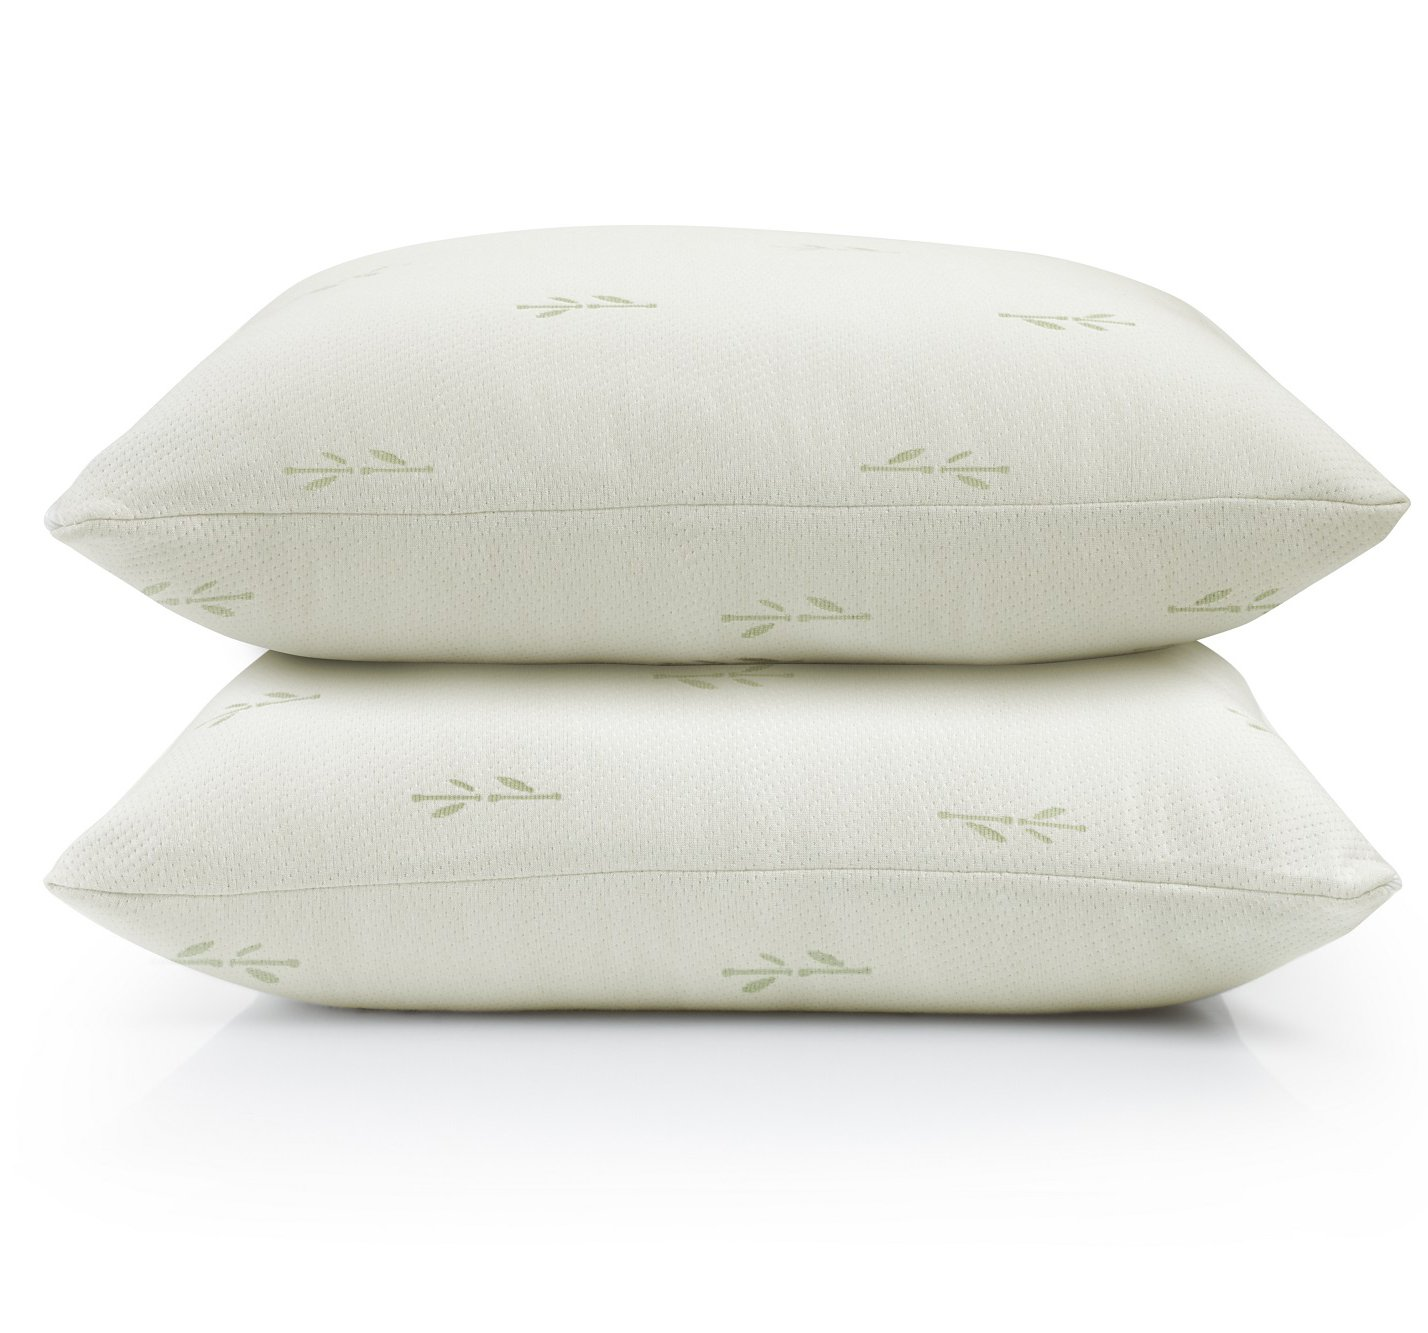 Home Fashion Designs 2-Pack Ultra-Luxury Eco-Friendly Bamboo Zippered Pillow Protectors. Naturally Allergy, Dust Mite & Bed Bug Resistant. Anti-Microbial & Sustainable Pillow Covers (Body Pillow) 4335361271